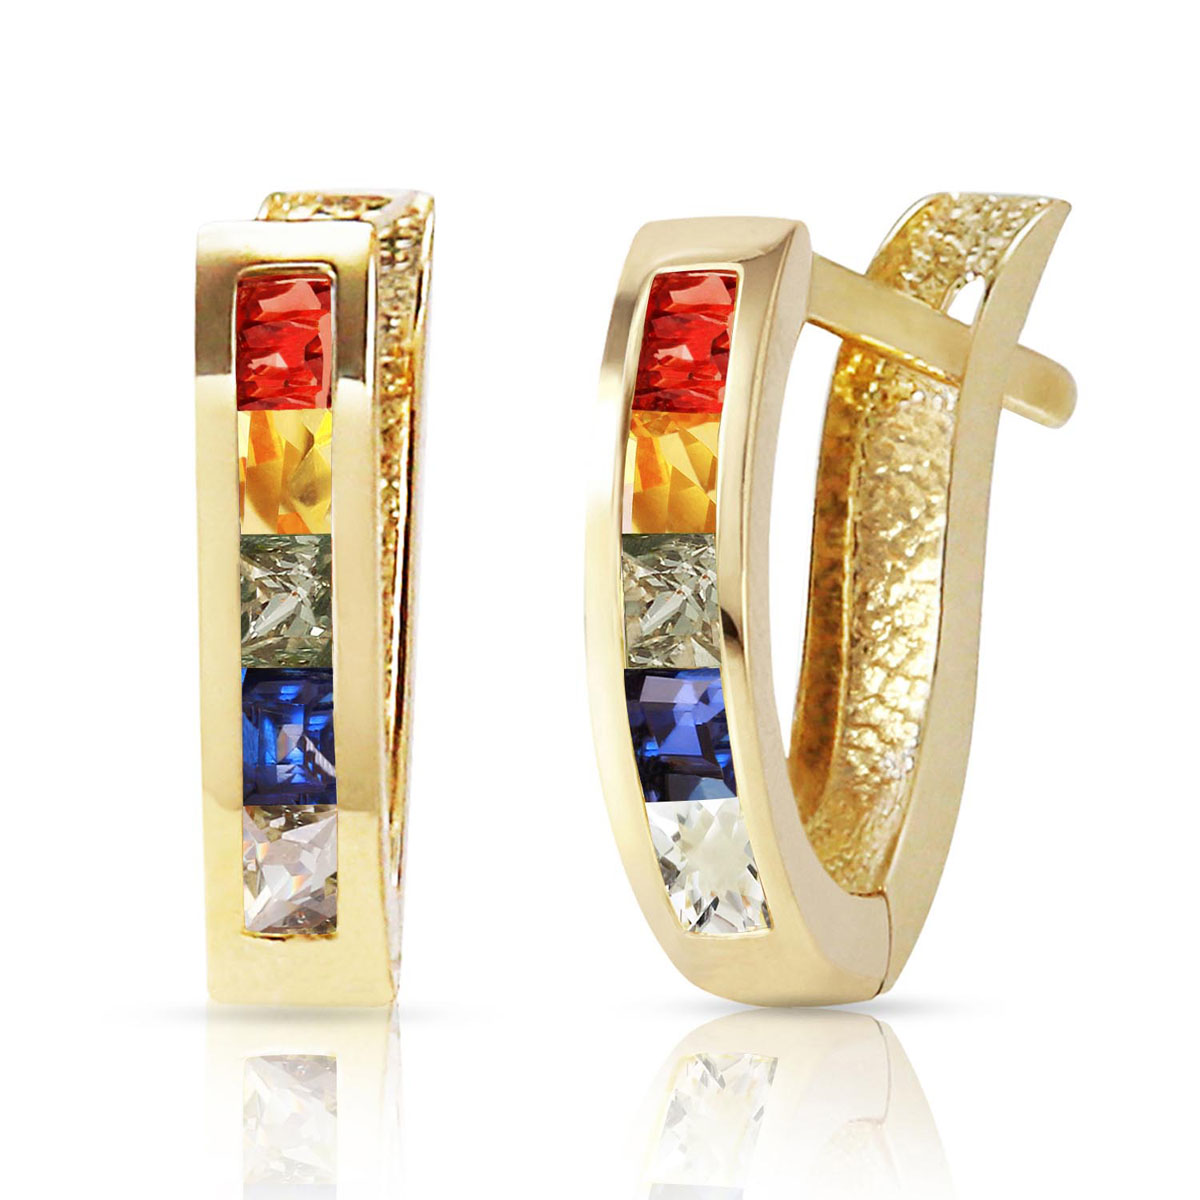 Sapphire Acute Huggie Earrings 1.3 ctw in 9ct Gold